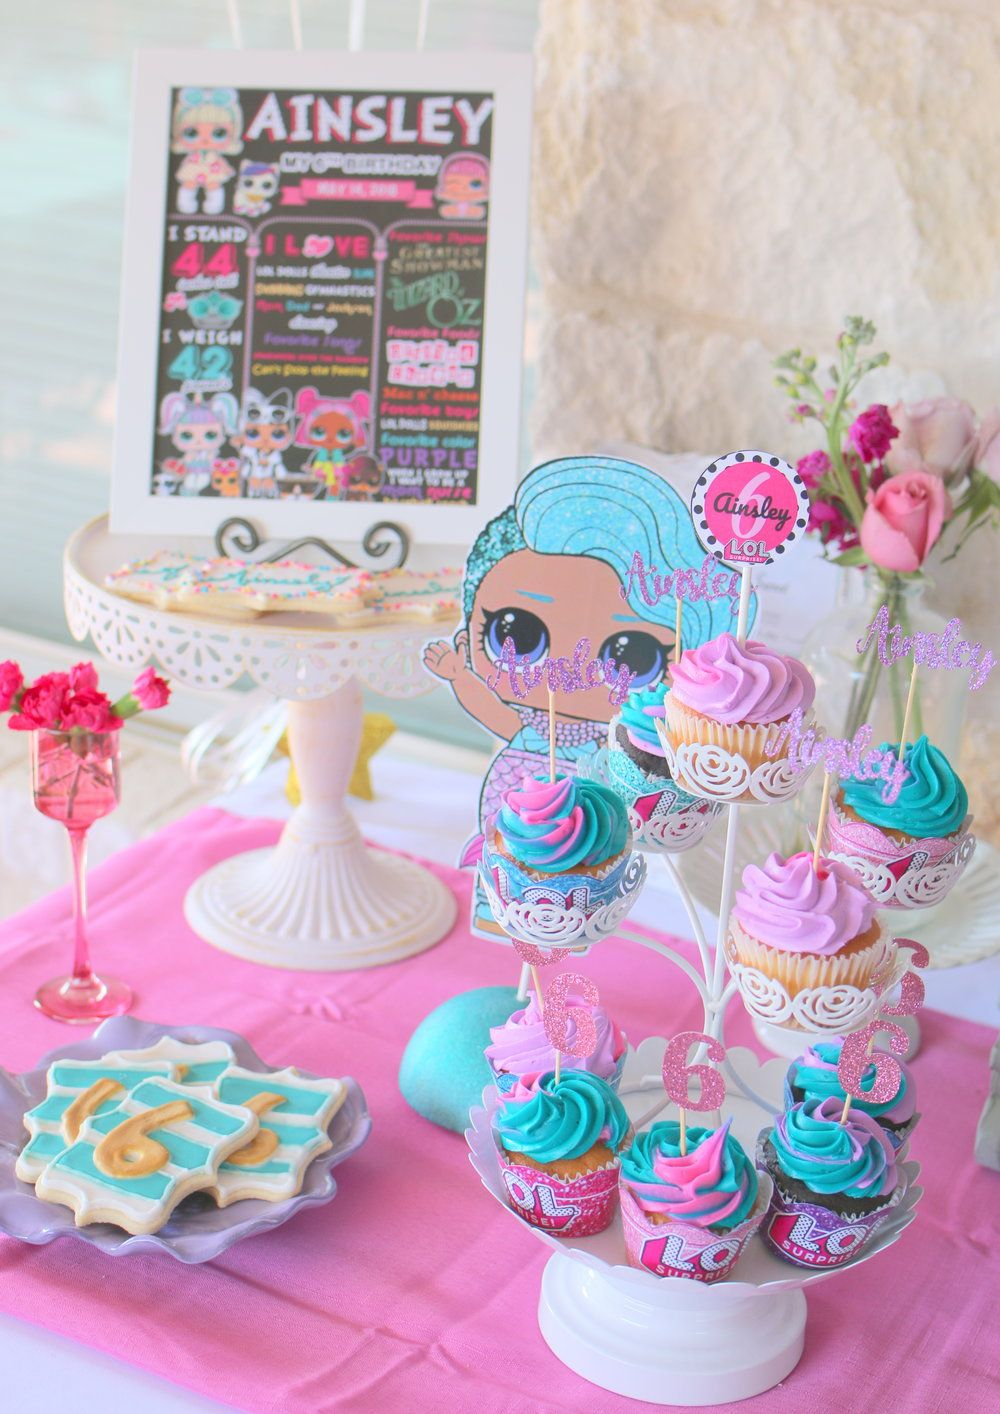 LOL Birthday Party! A fun doll theme for a sweet 6 year